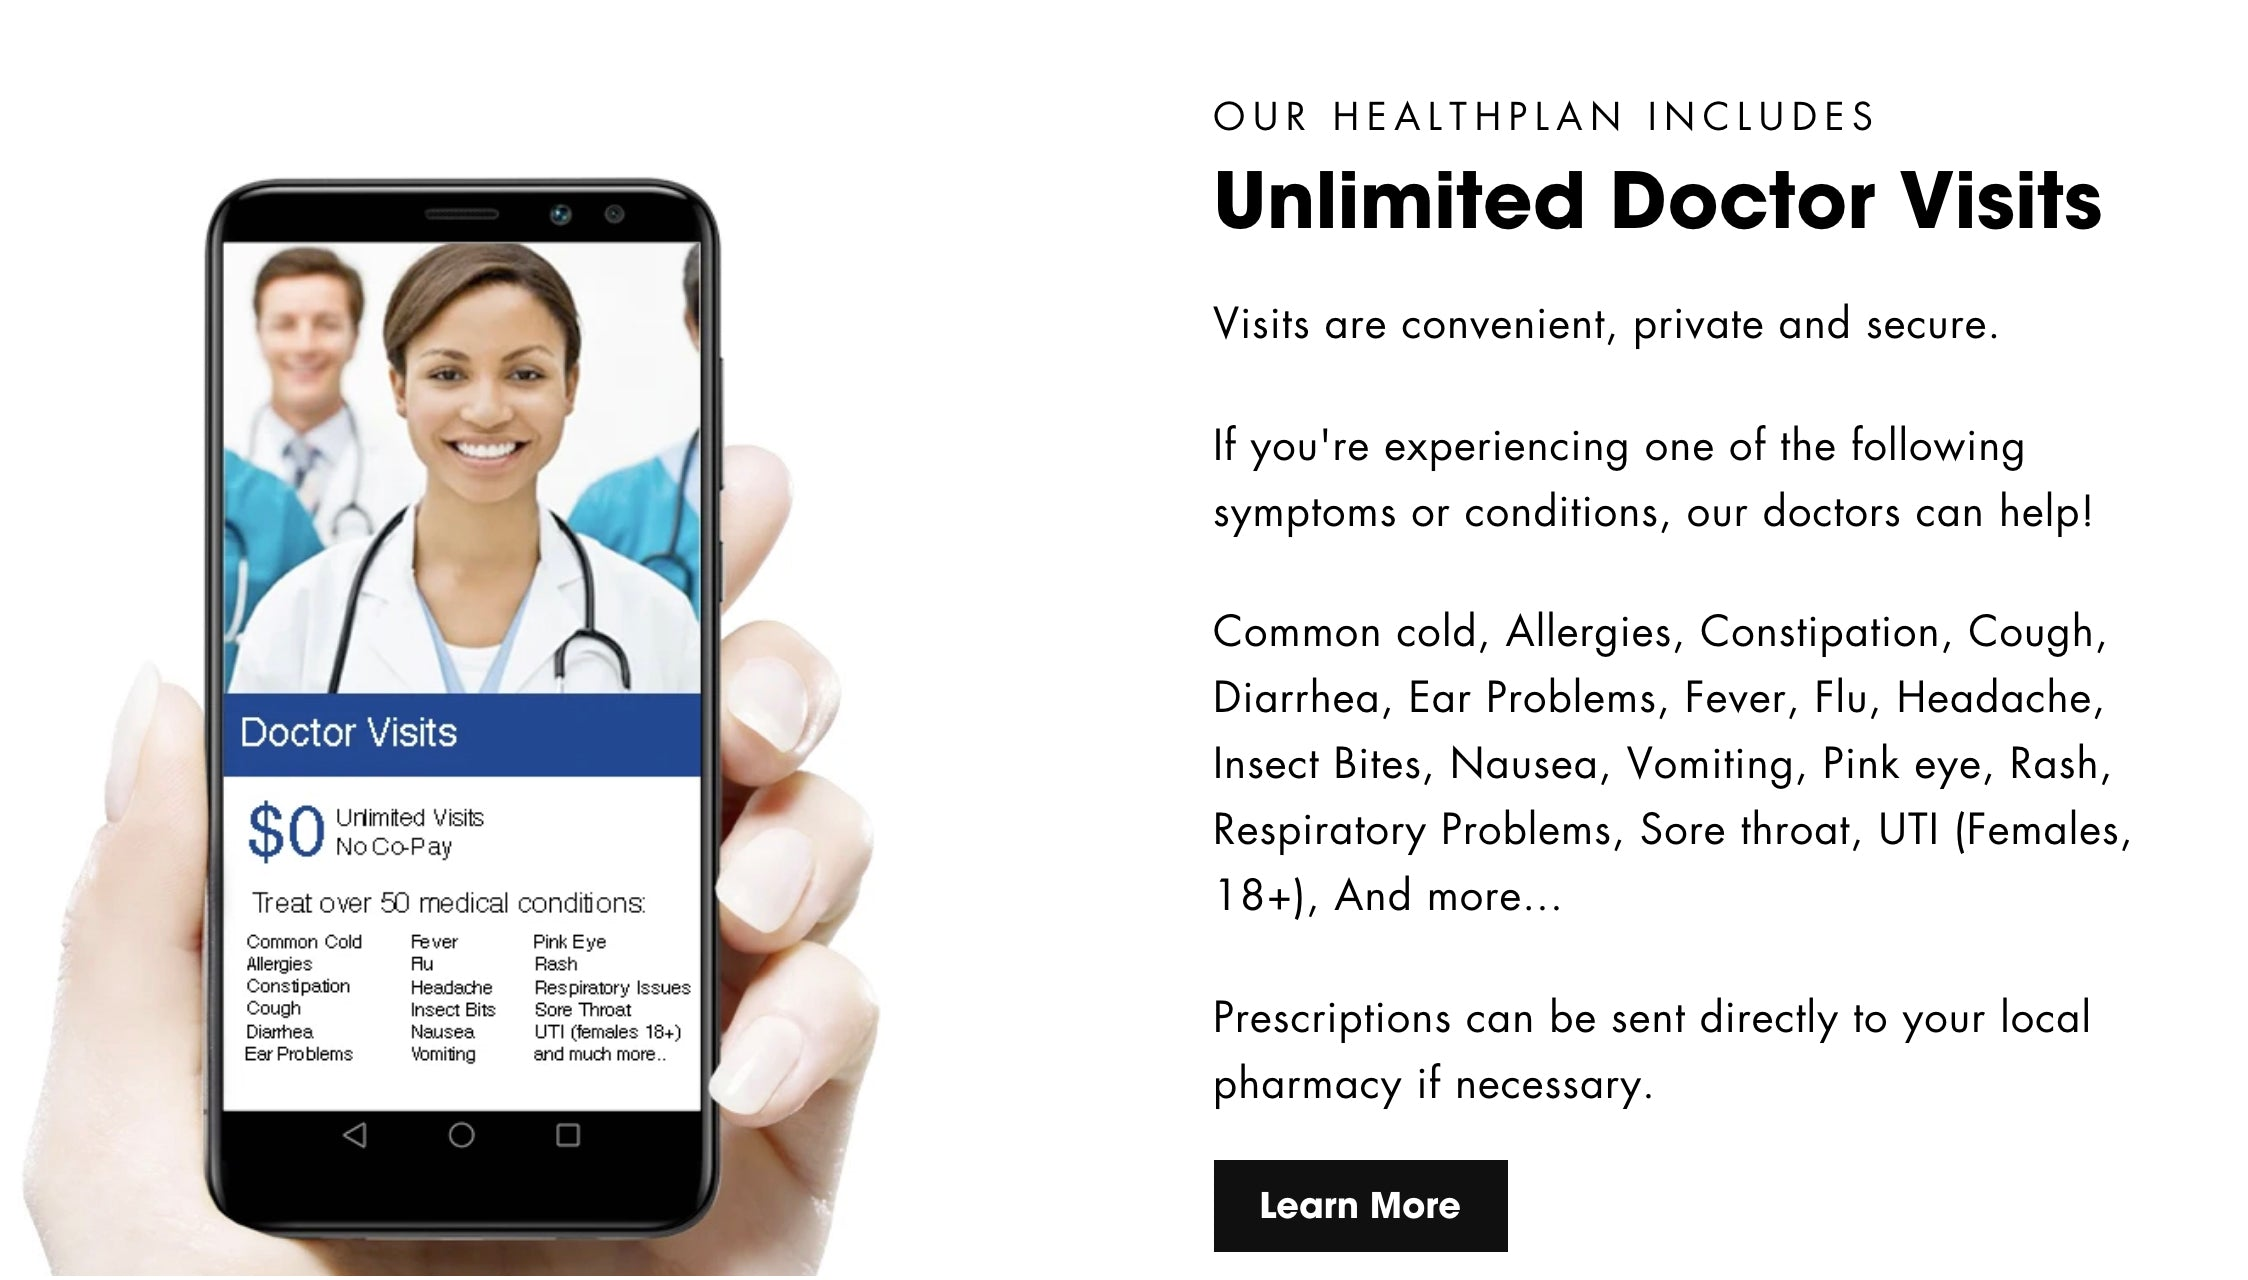 https://healthalliancenetwork.com/products/nj-realtors-special-individuals-families-includes-unlimited-telemedicine-unlimited-dermatology-and-behavioral-health